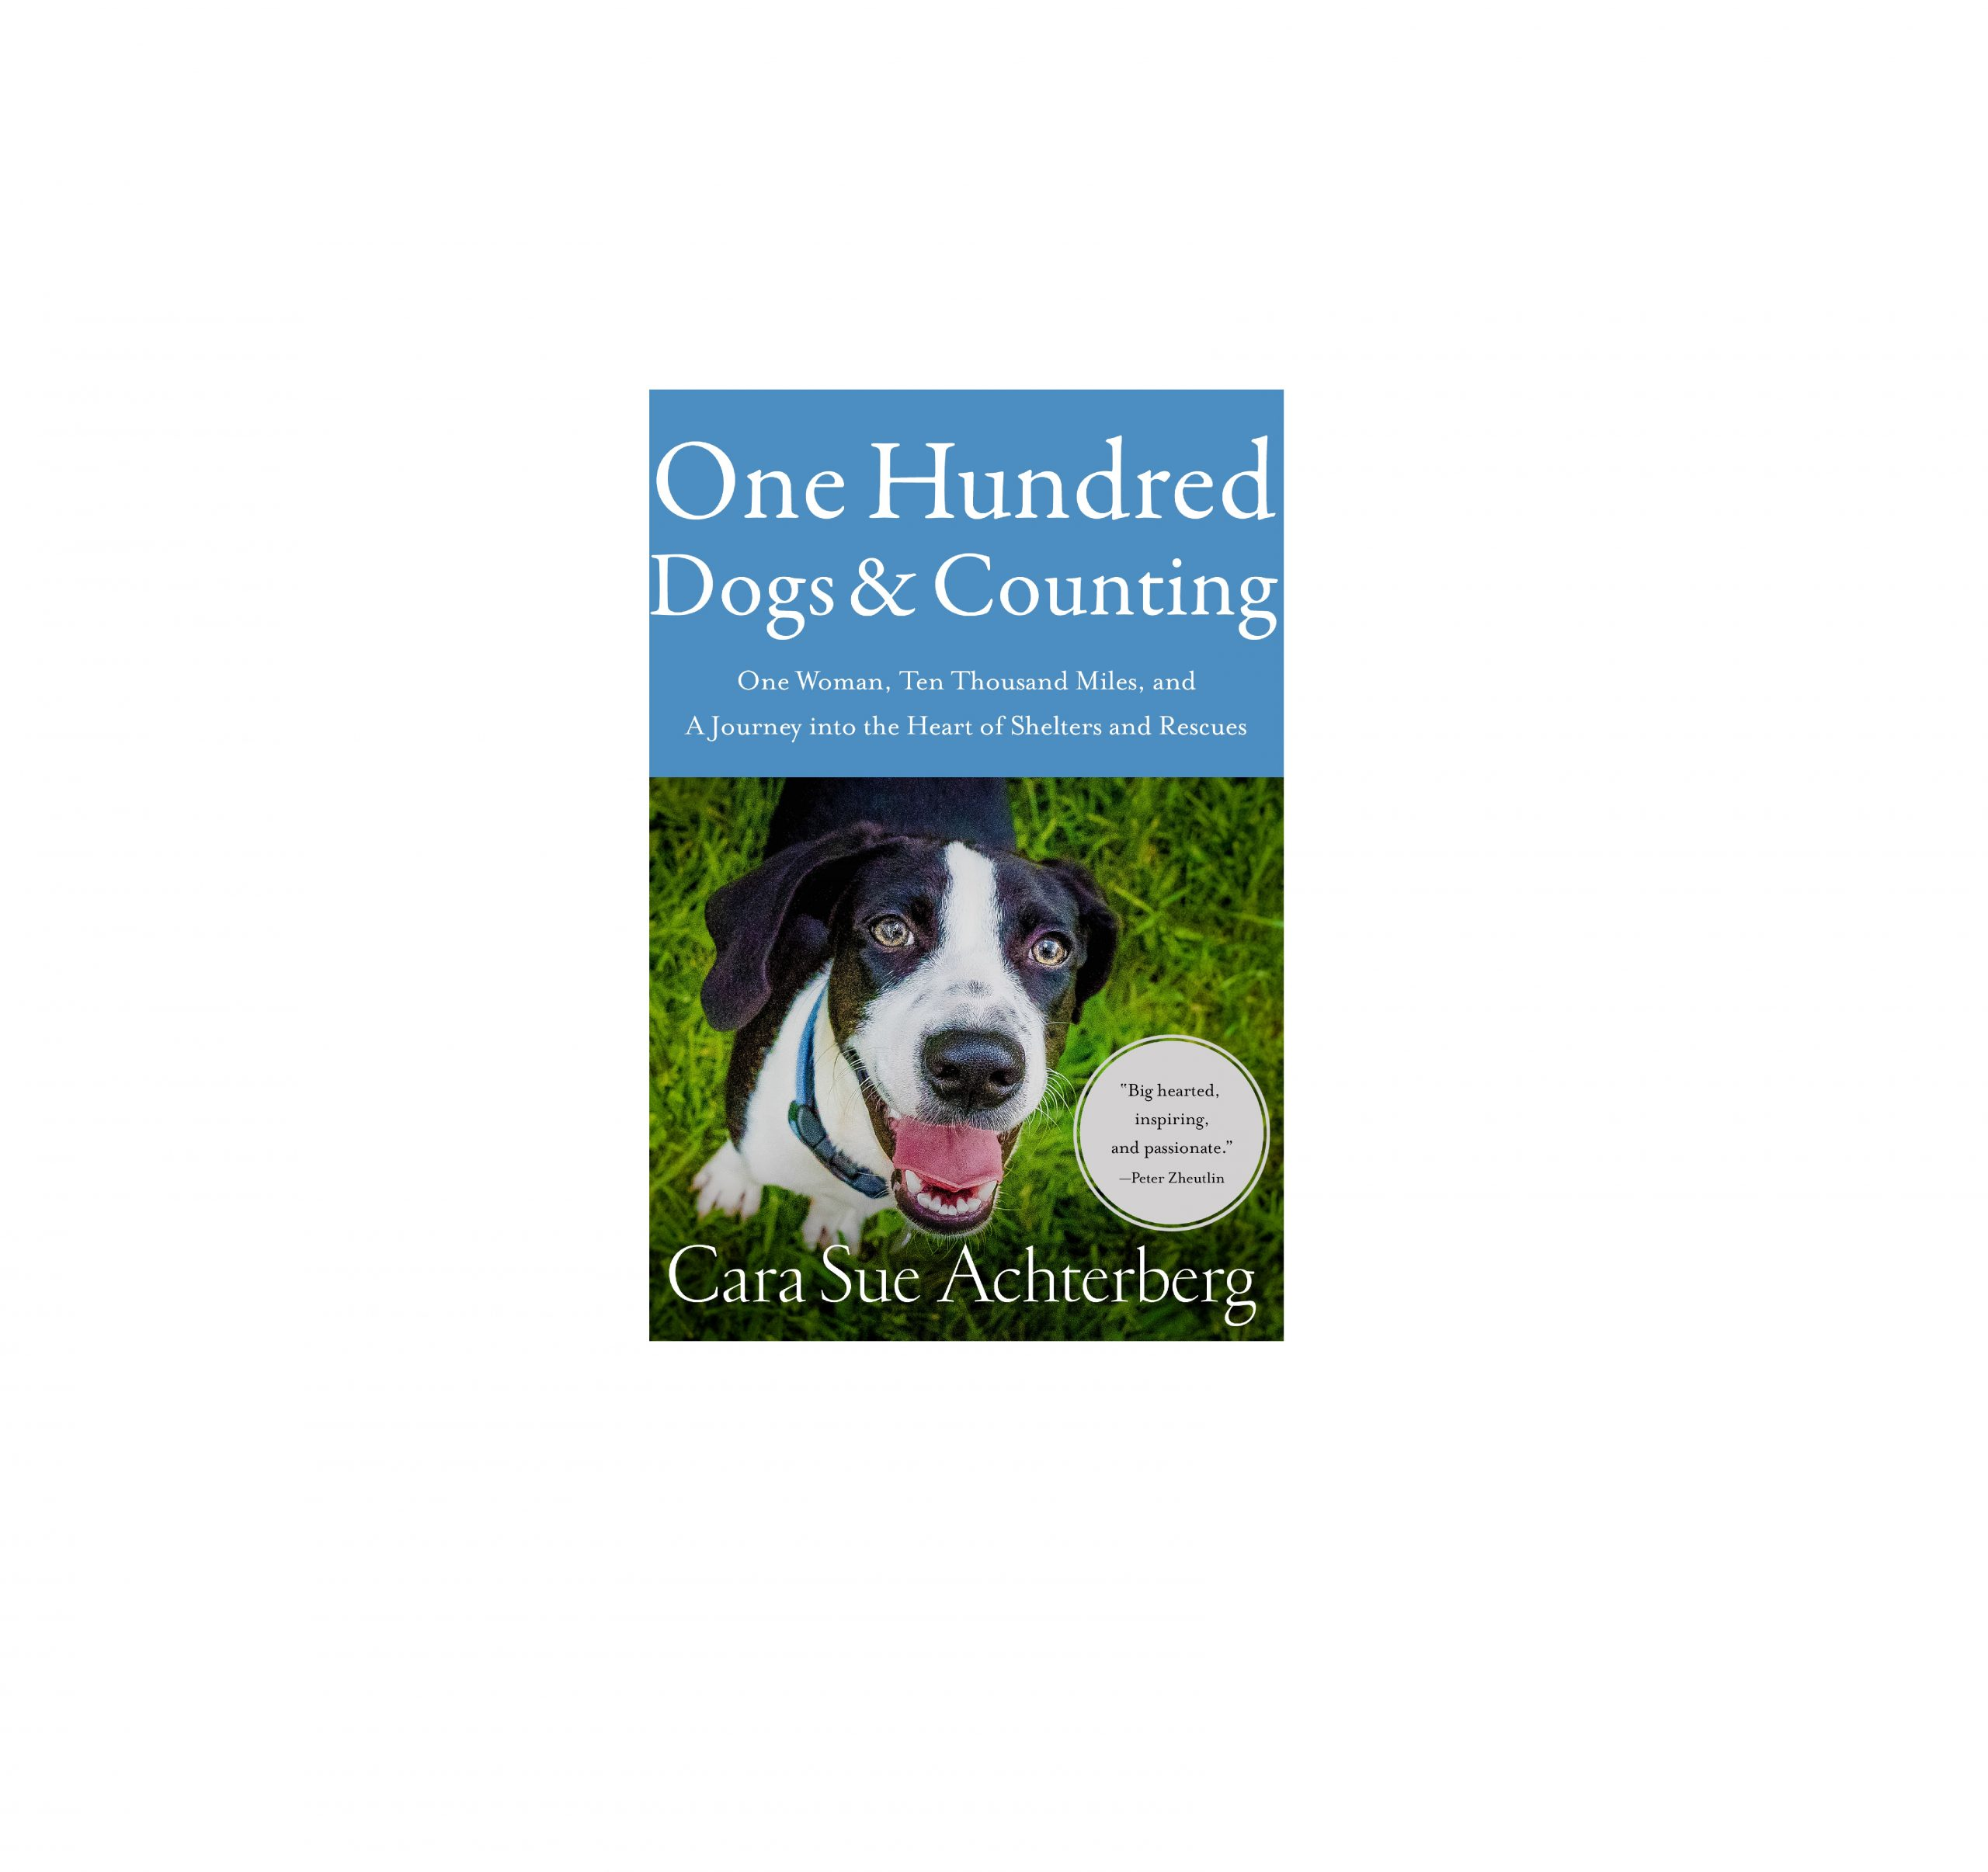 Book Review: One Hundred Dogs & Counting